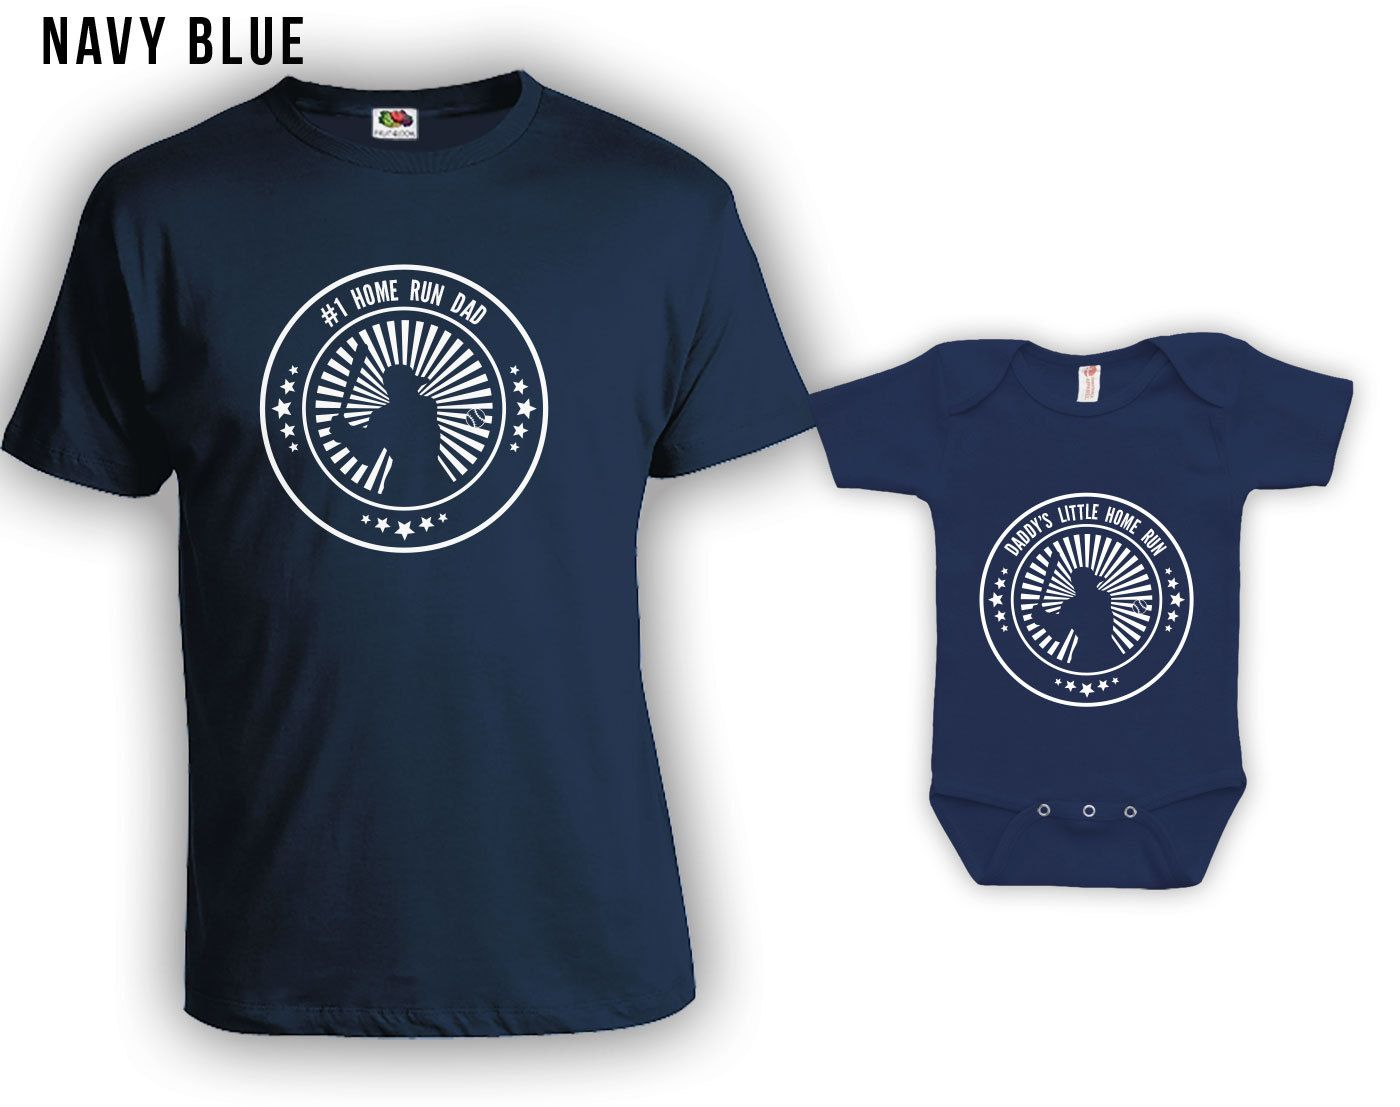 d53ecfac Matching Father Son Shirts, Home Run Dad, Daddys Little Home Run, Baseball  Dad, MLB Fan, Best Dad Ever, Bodysuit, Christmas Gifts CT-861-862 by ...